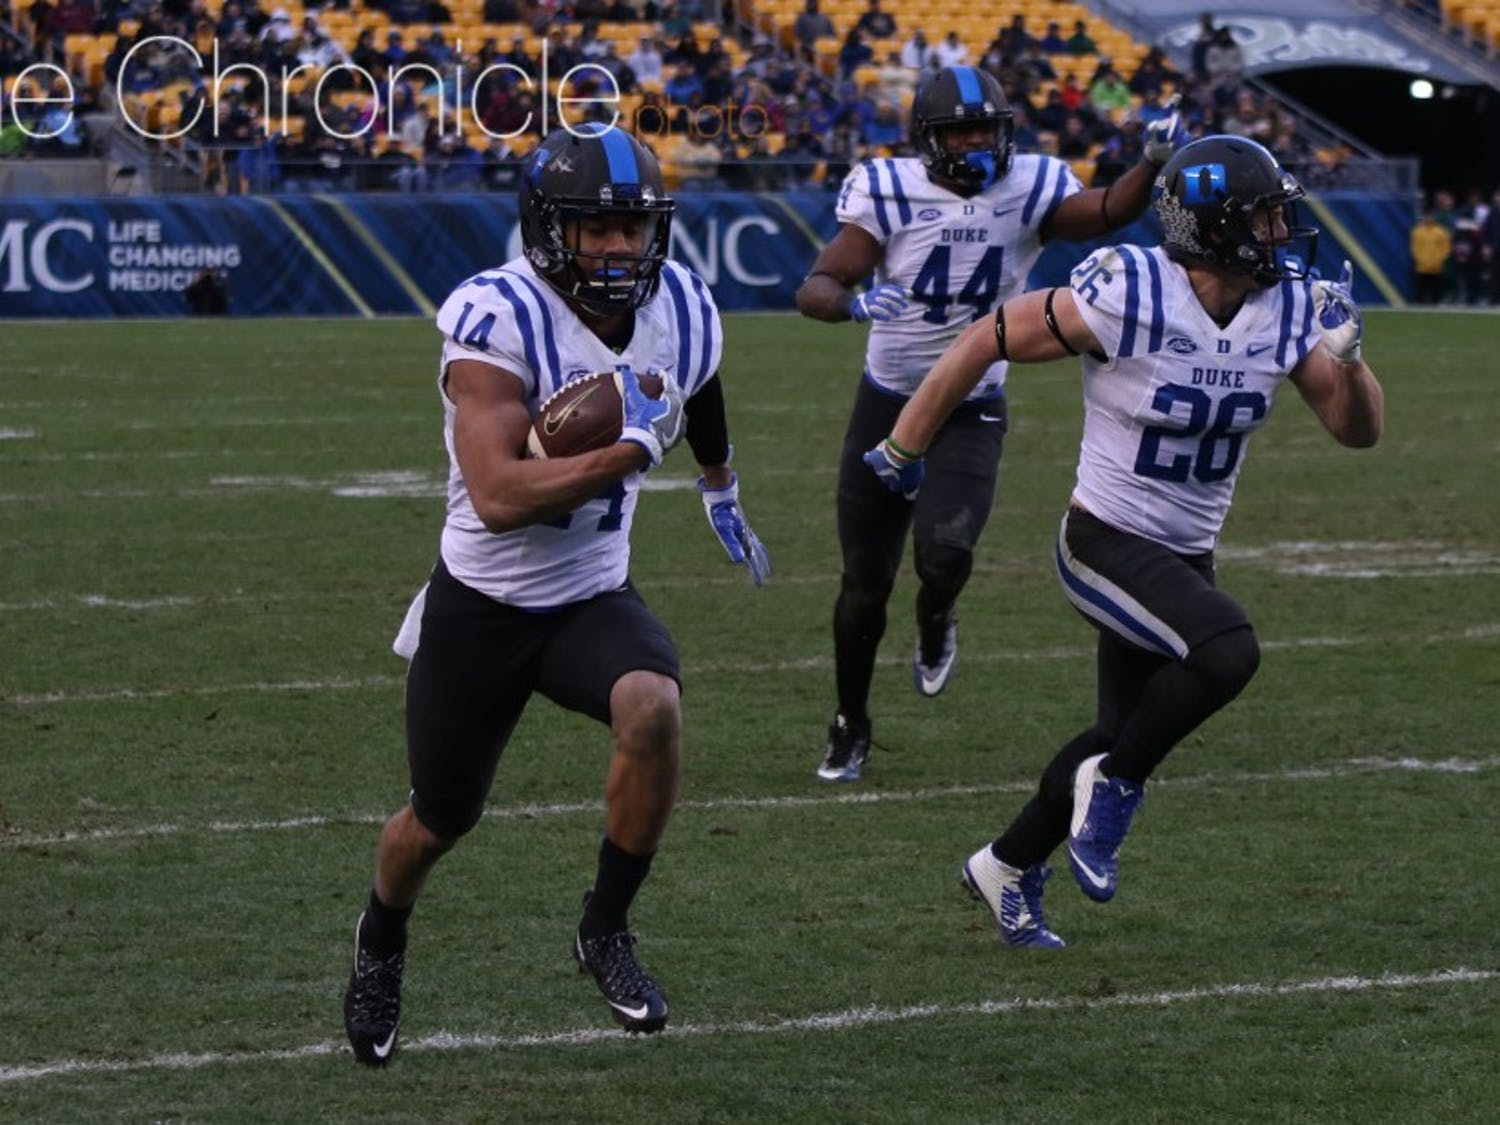 Senior Bryon Fields is the only experienced starter returning in Duke's secondary and returned an interception for a touchdown against Pittsburgh last season.